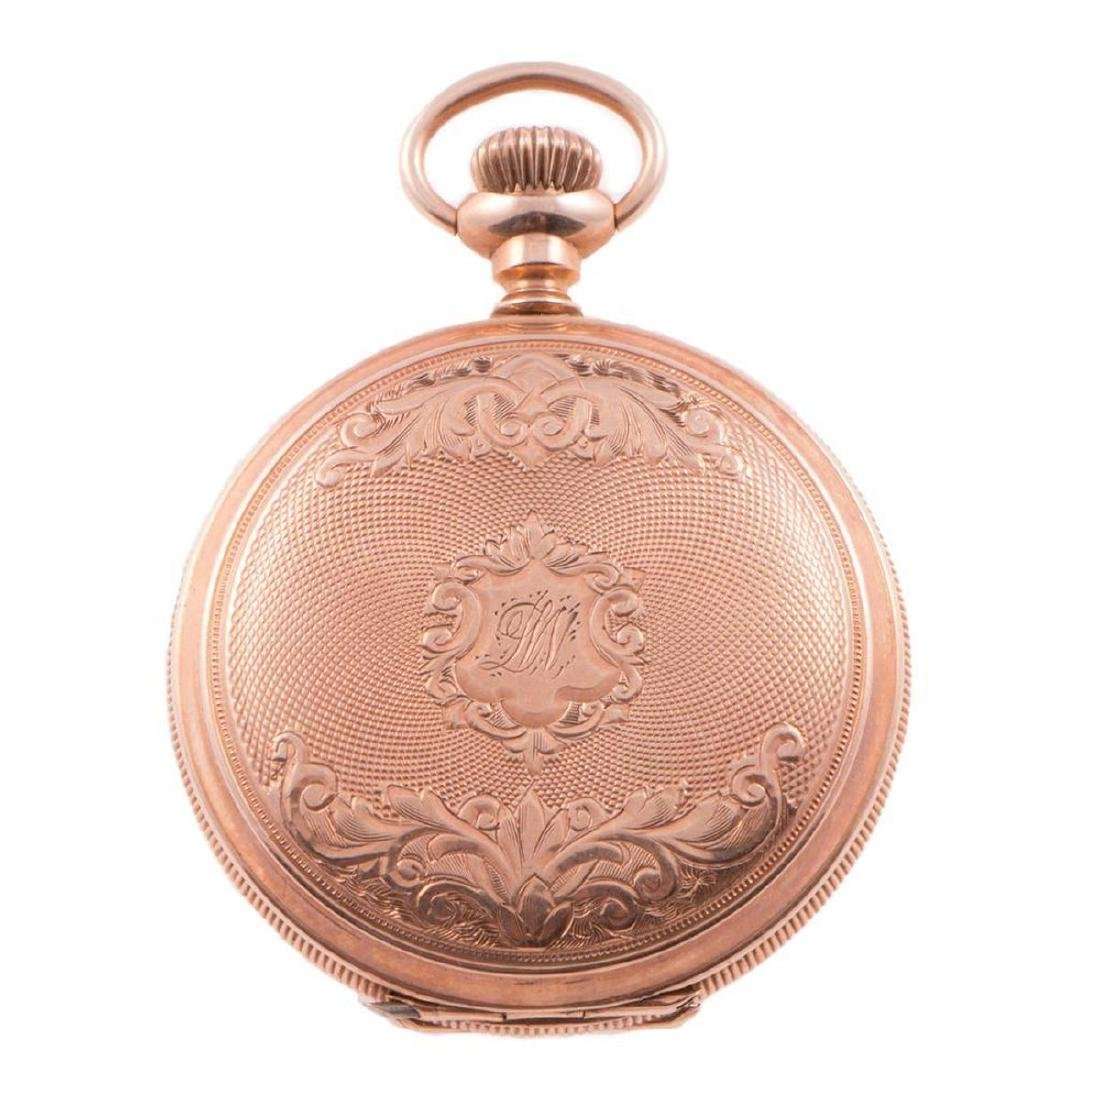 Waltham 14k gold hunting cased pocketwatch, with box - 3